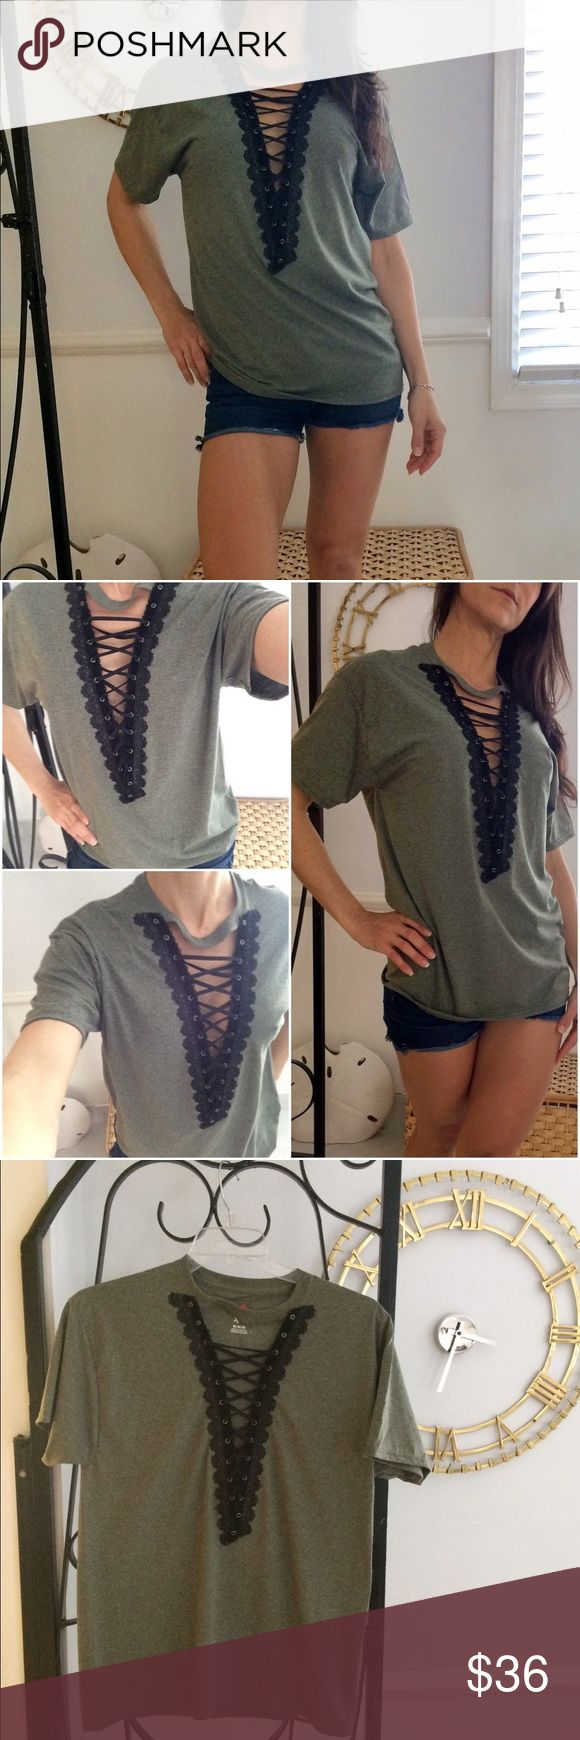 Sexy Summer Deep V Lace Up T-Shirt Get your sexy on! Handmade with ❤️.                                  Brand new T-shirt                                                         Size:Adult Medium Hanes.                                     Color: Heathered army green/ moss green.          Trim:beautiful black velvet & Lace grommet trim along the deep V plunge.Soft Black corset lacing.                                                                          Wear it loose, fitted, knotted…